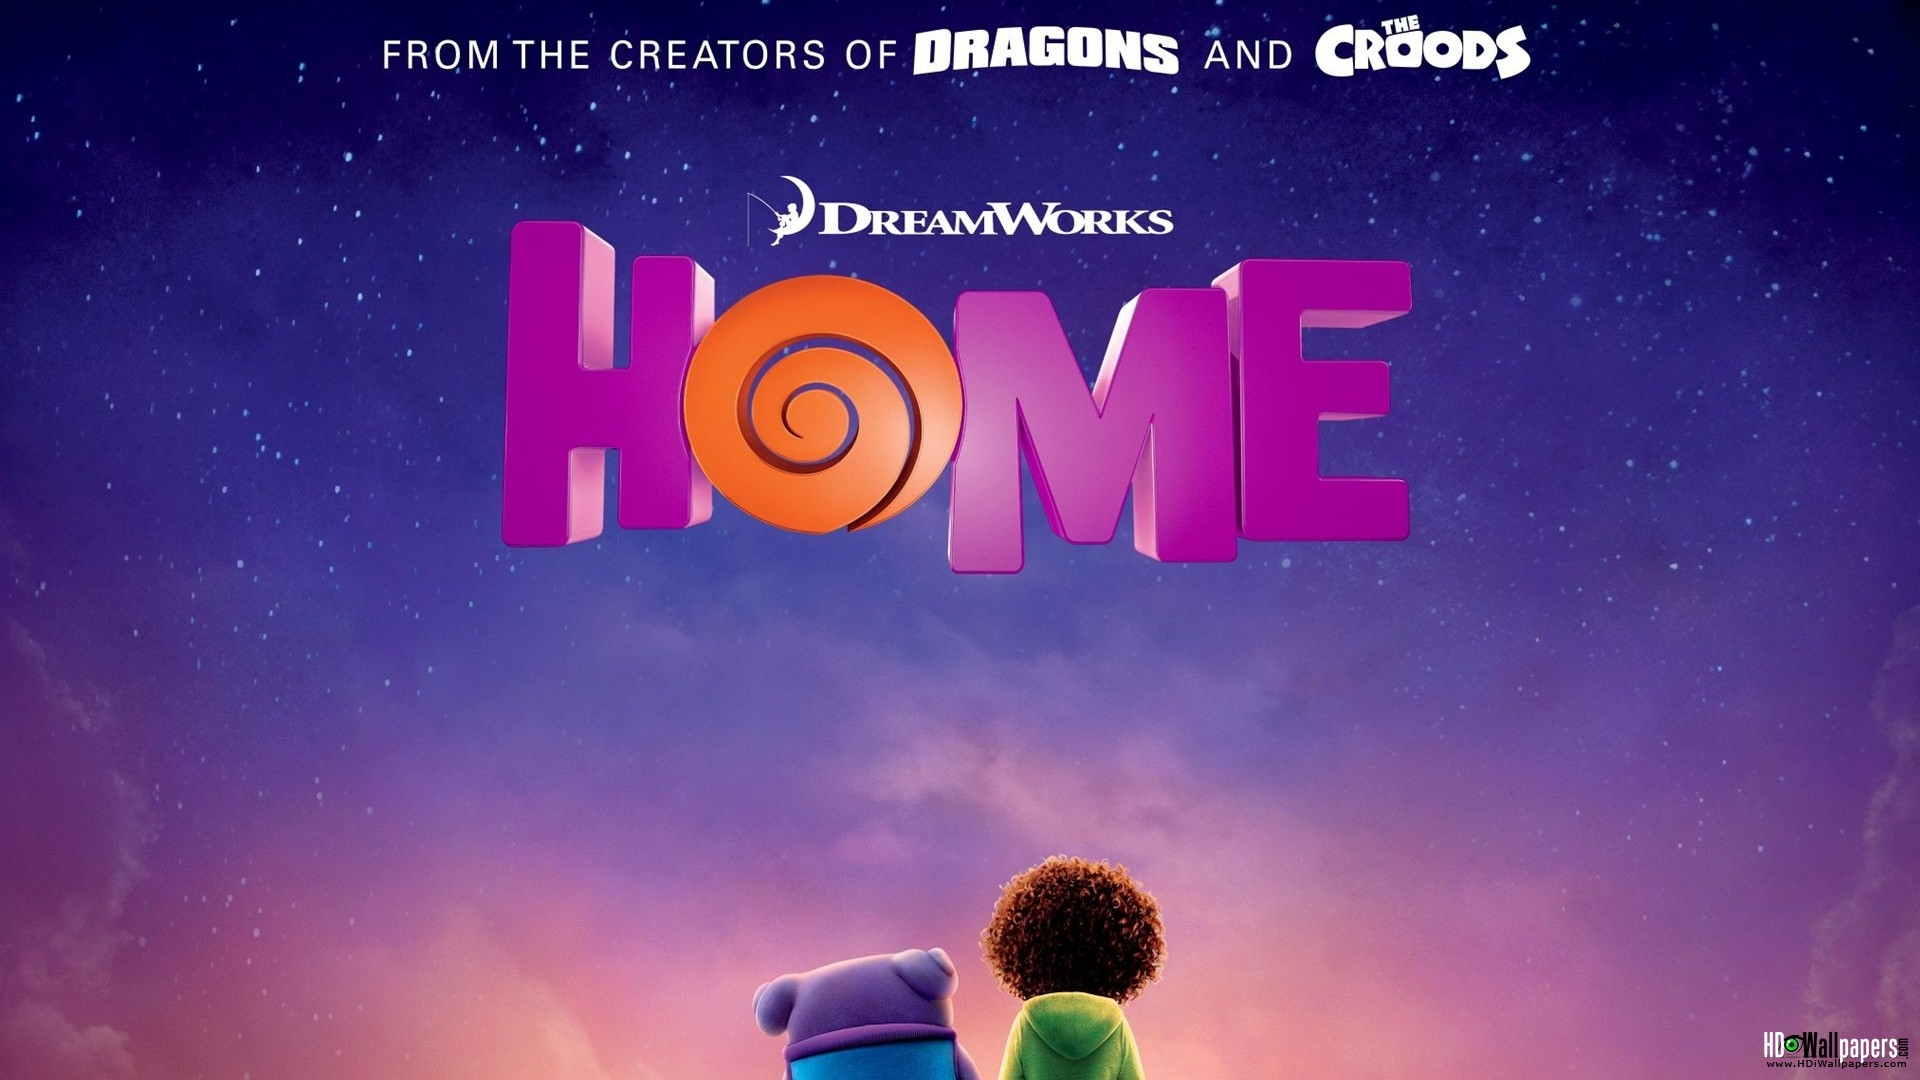 Home 2015 Full Movie Watch OnlineDownload Home 2015 Full Movie 1920x1080